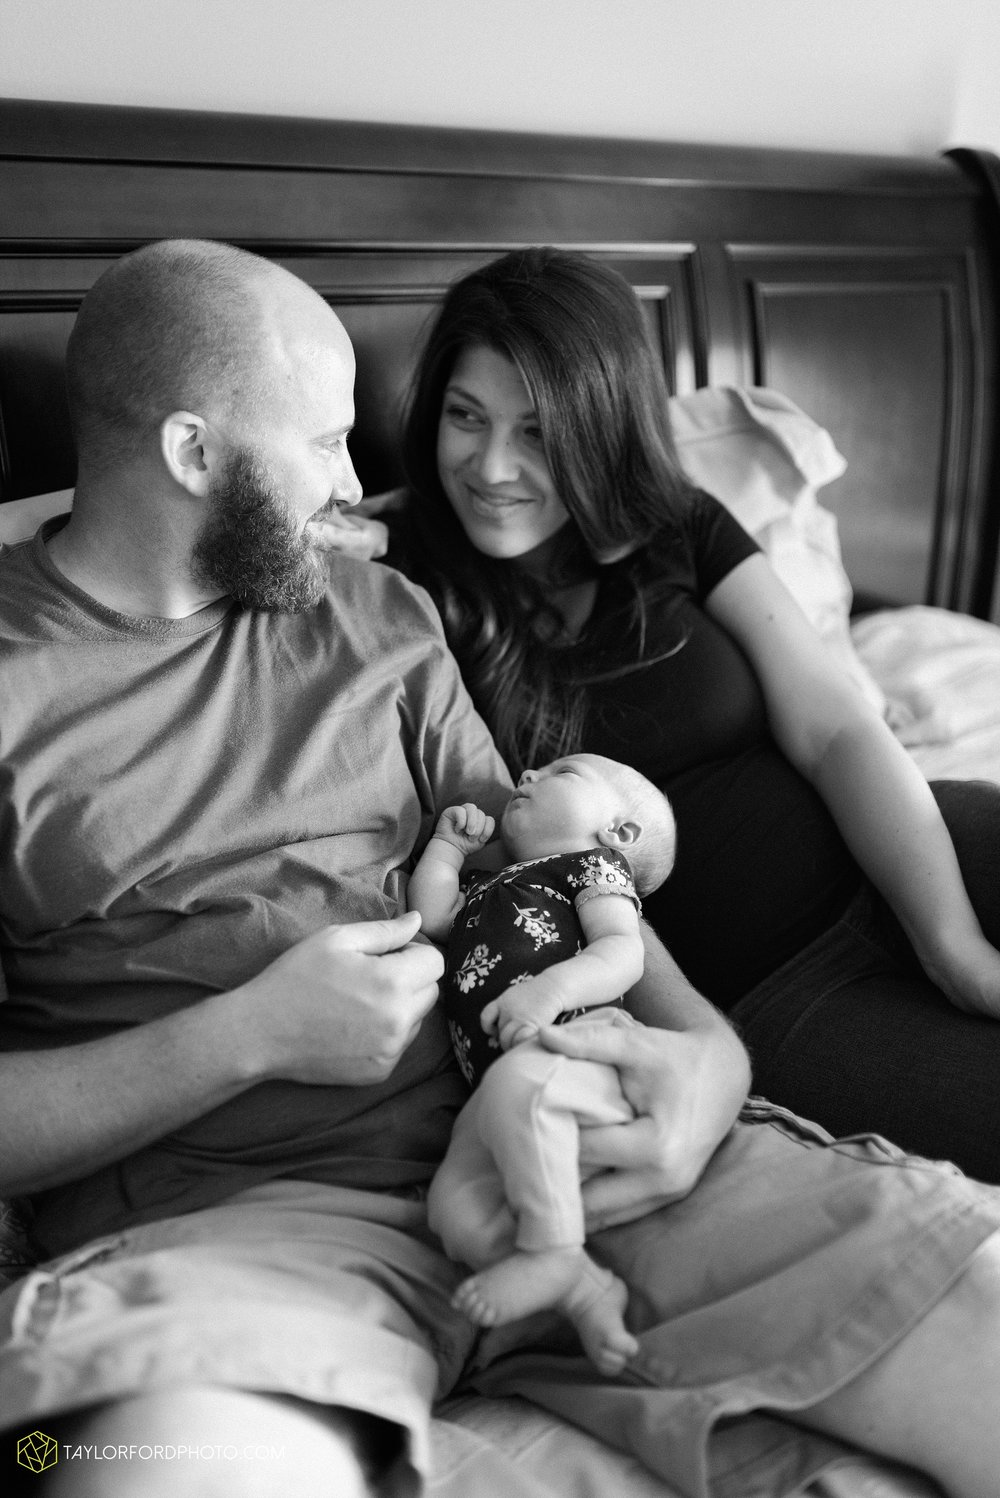 fort-wayne-indiand-newborn-lifestyle-family-at-home-photographer-taylor-ford-photography_0318.jpg